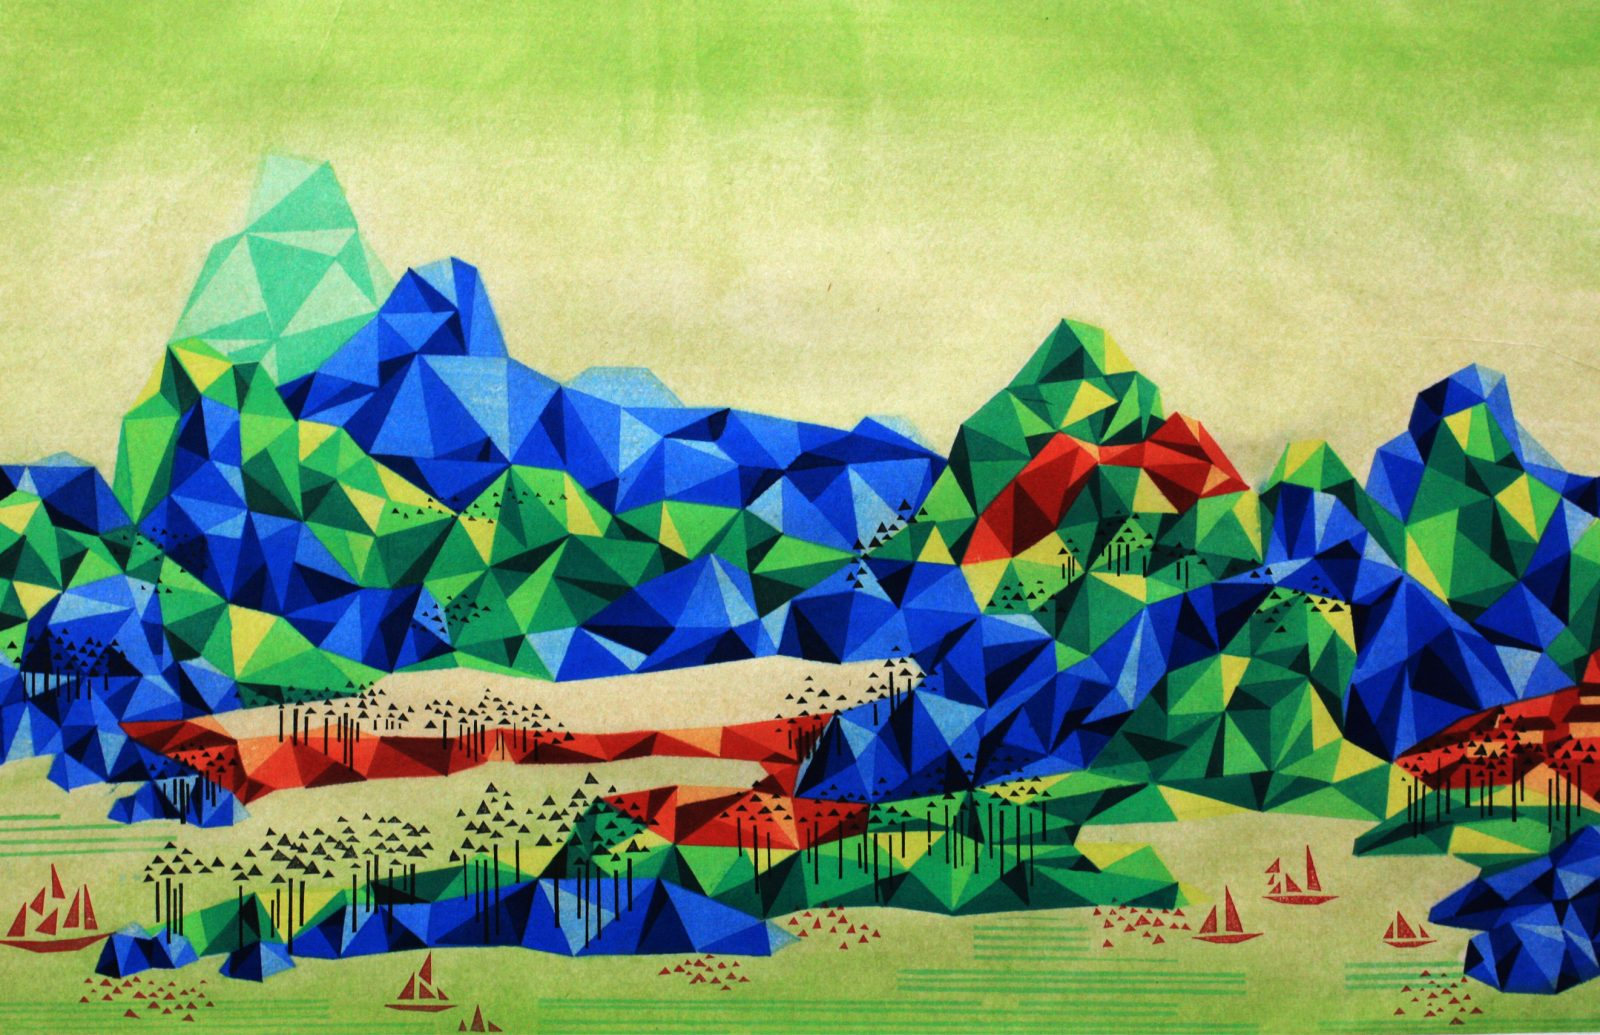 Reconstructed Landscape 《重构山水-6》, 50×78cm, 2014,waterbased woodcut